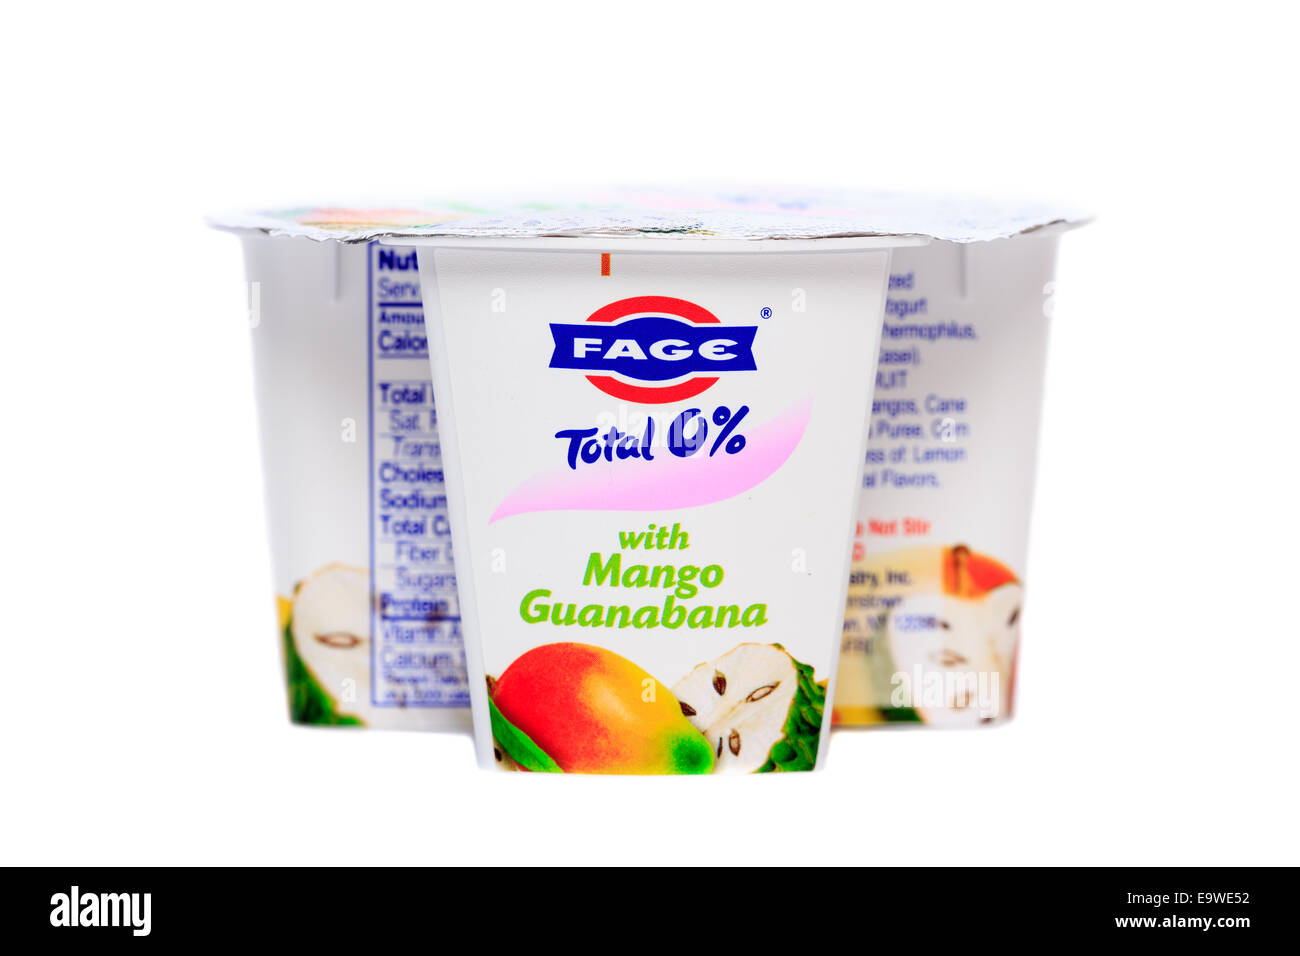 Fage Total 0% nonfat greek strained yogurt cup Mango Guanabana - Stock Image